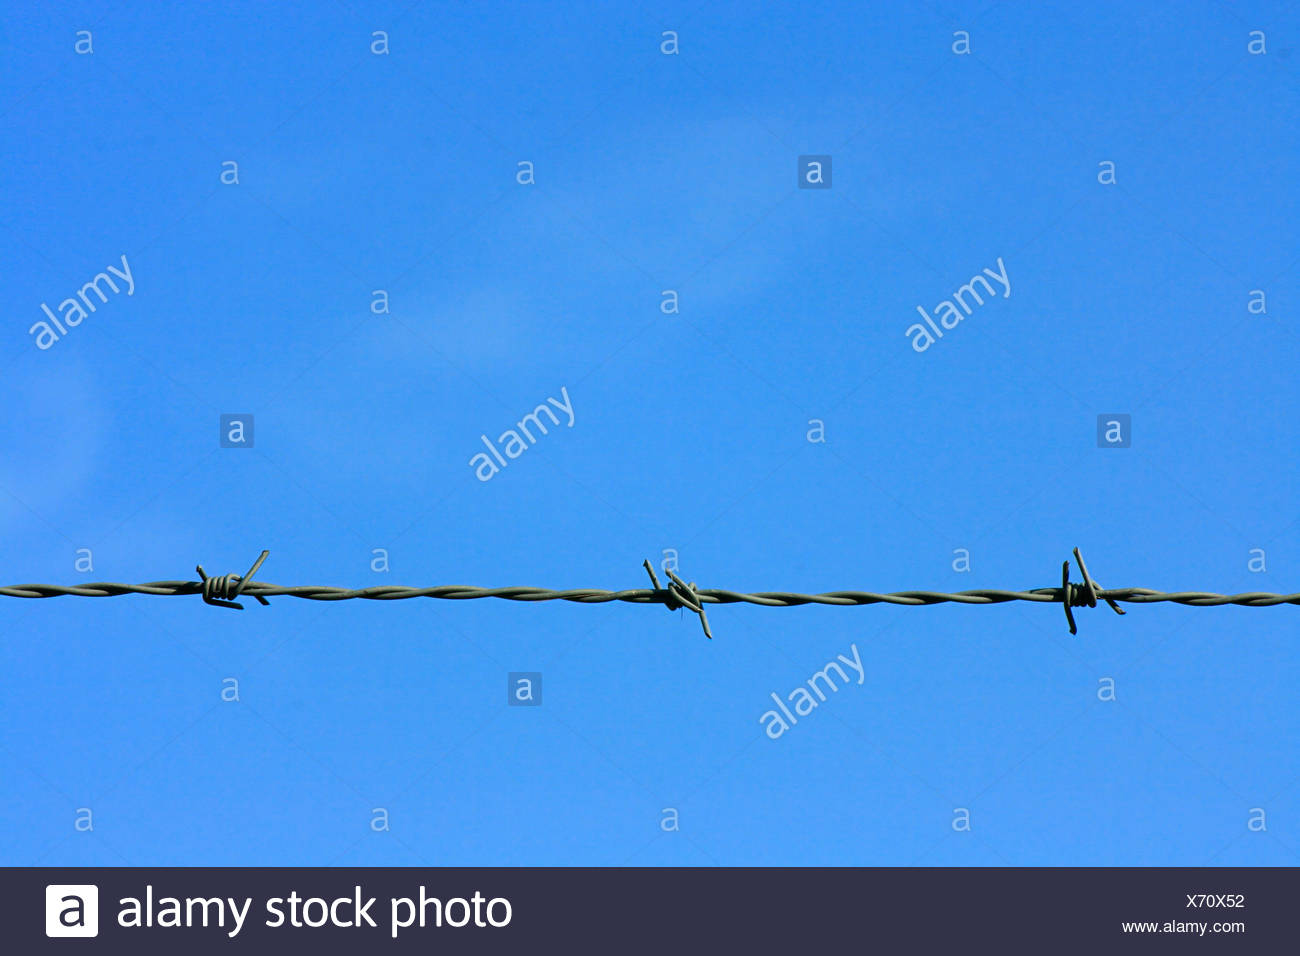 Blue sky and barbwire, barbedwire - Stock Image